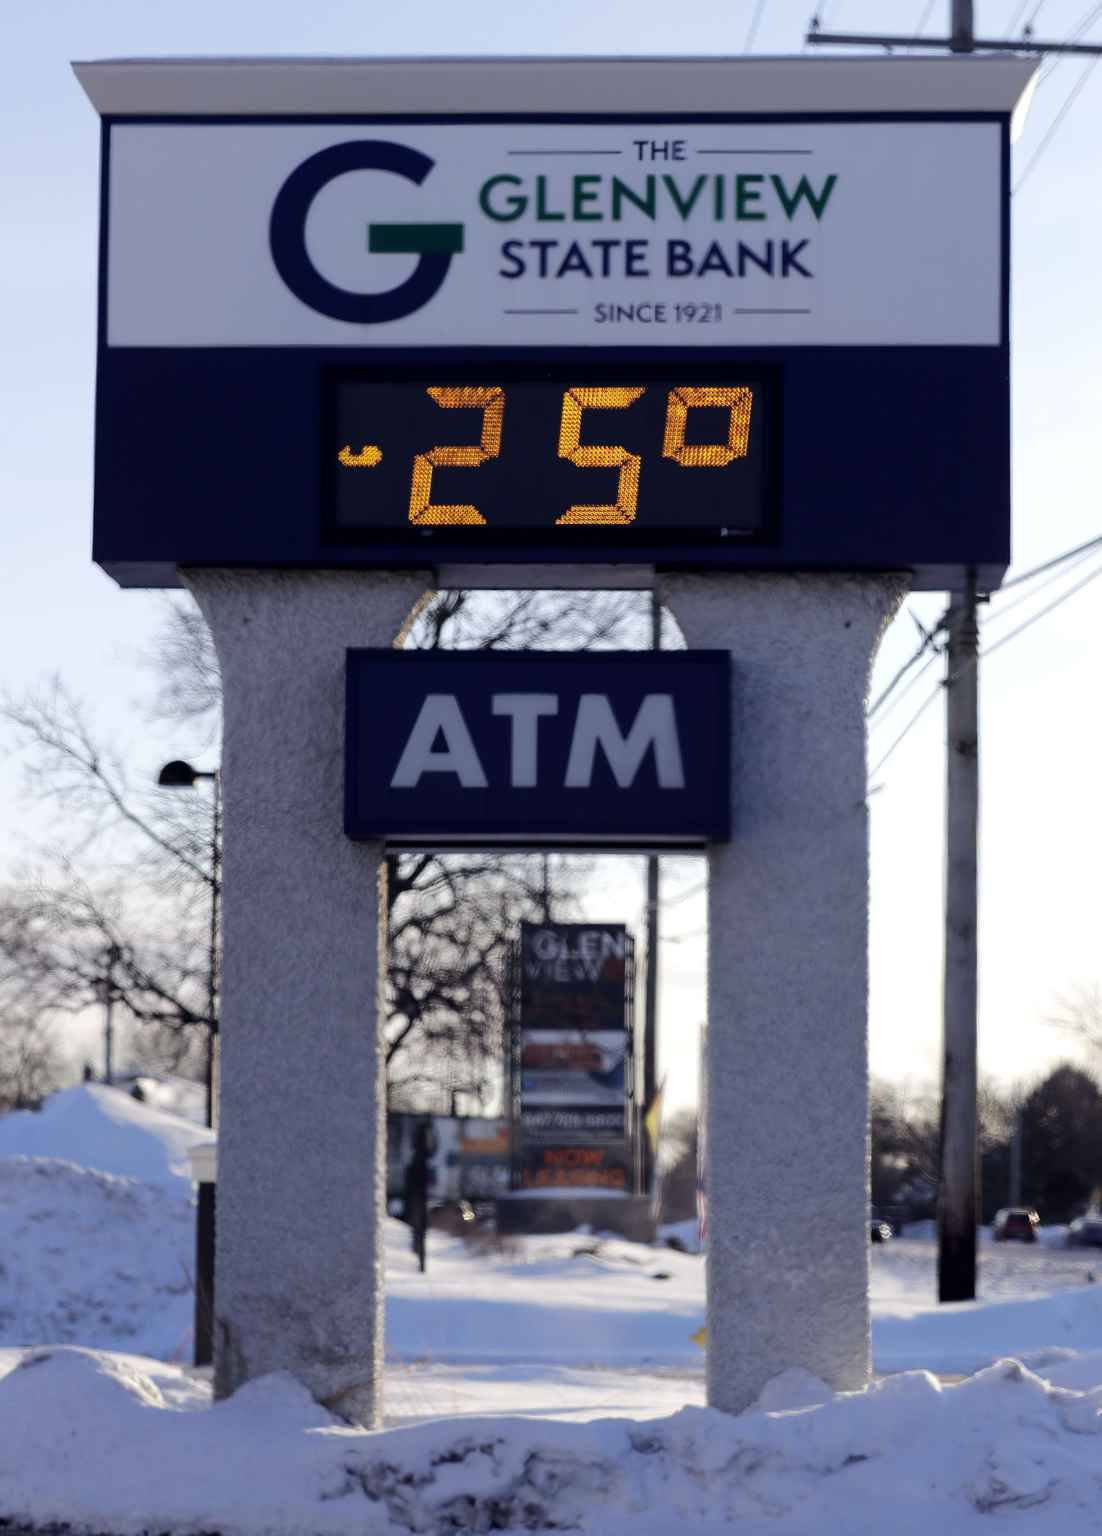 A sign shows the current outdoor temperature in Glenview, Ill., Wednesday, Jan. 30, 2019. A deadly arctic deep freeze enveloped the Midwest with record-breaking temperatures on Wednesday, triggering widespread closures of schools and businesses, and prompting the U.S. Postal Service to take the rare step of suspending mail delivery to a wide swath of the region.